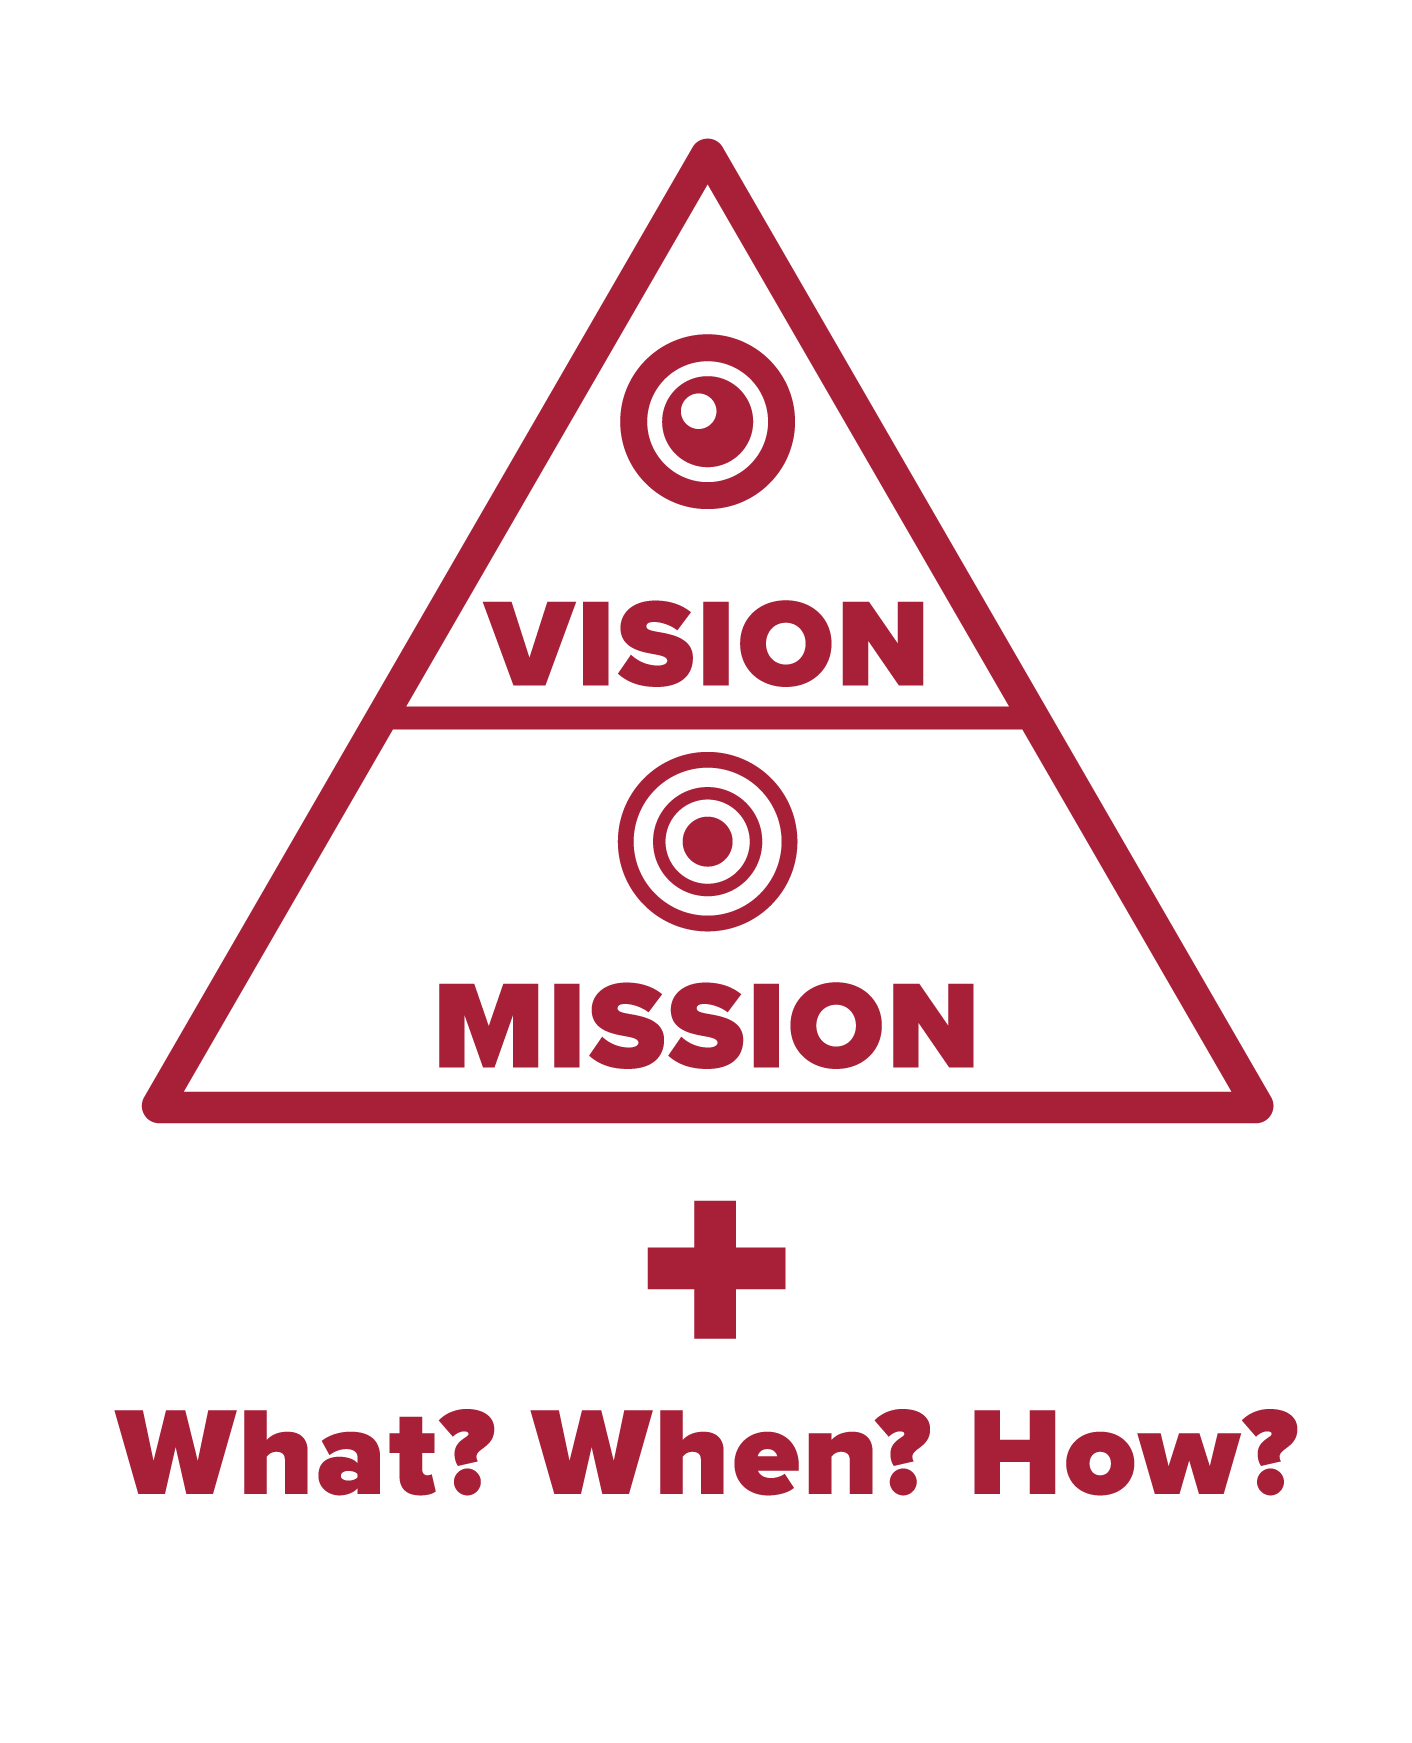 Image of Evaluation Strategy using the Vision/Mission Pyramid